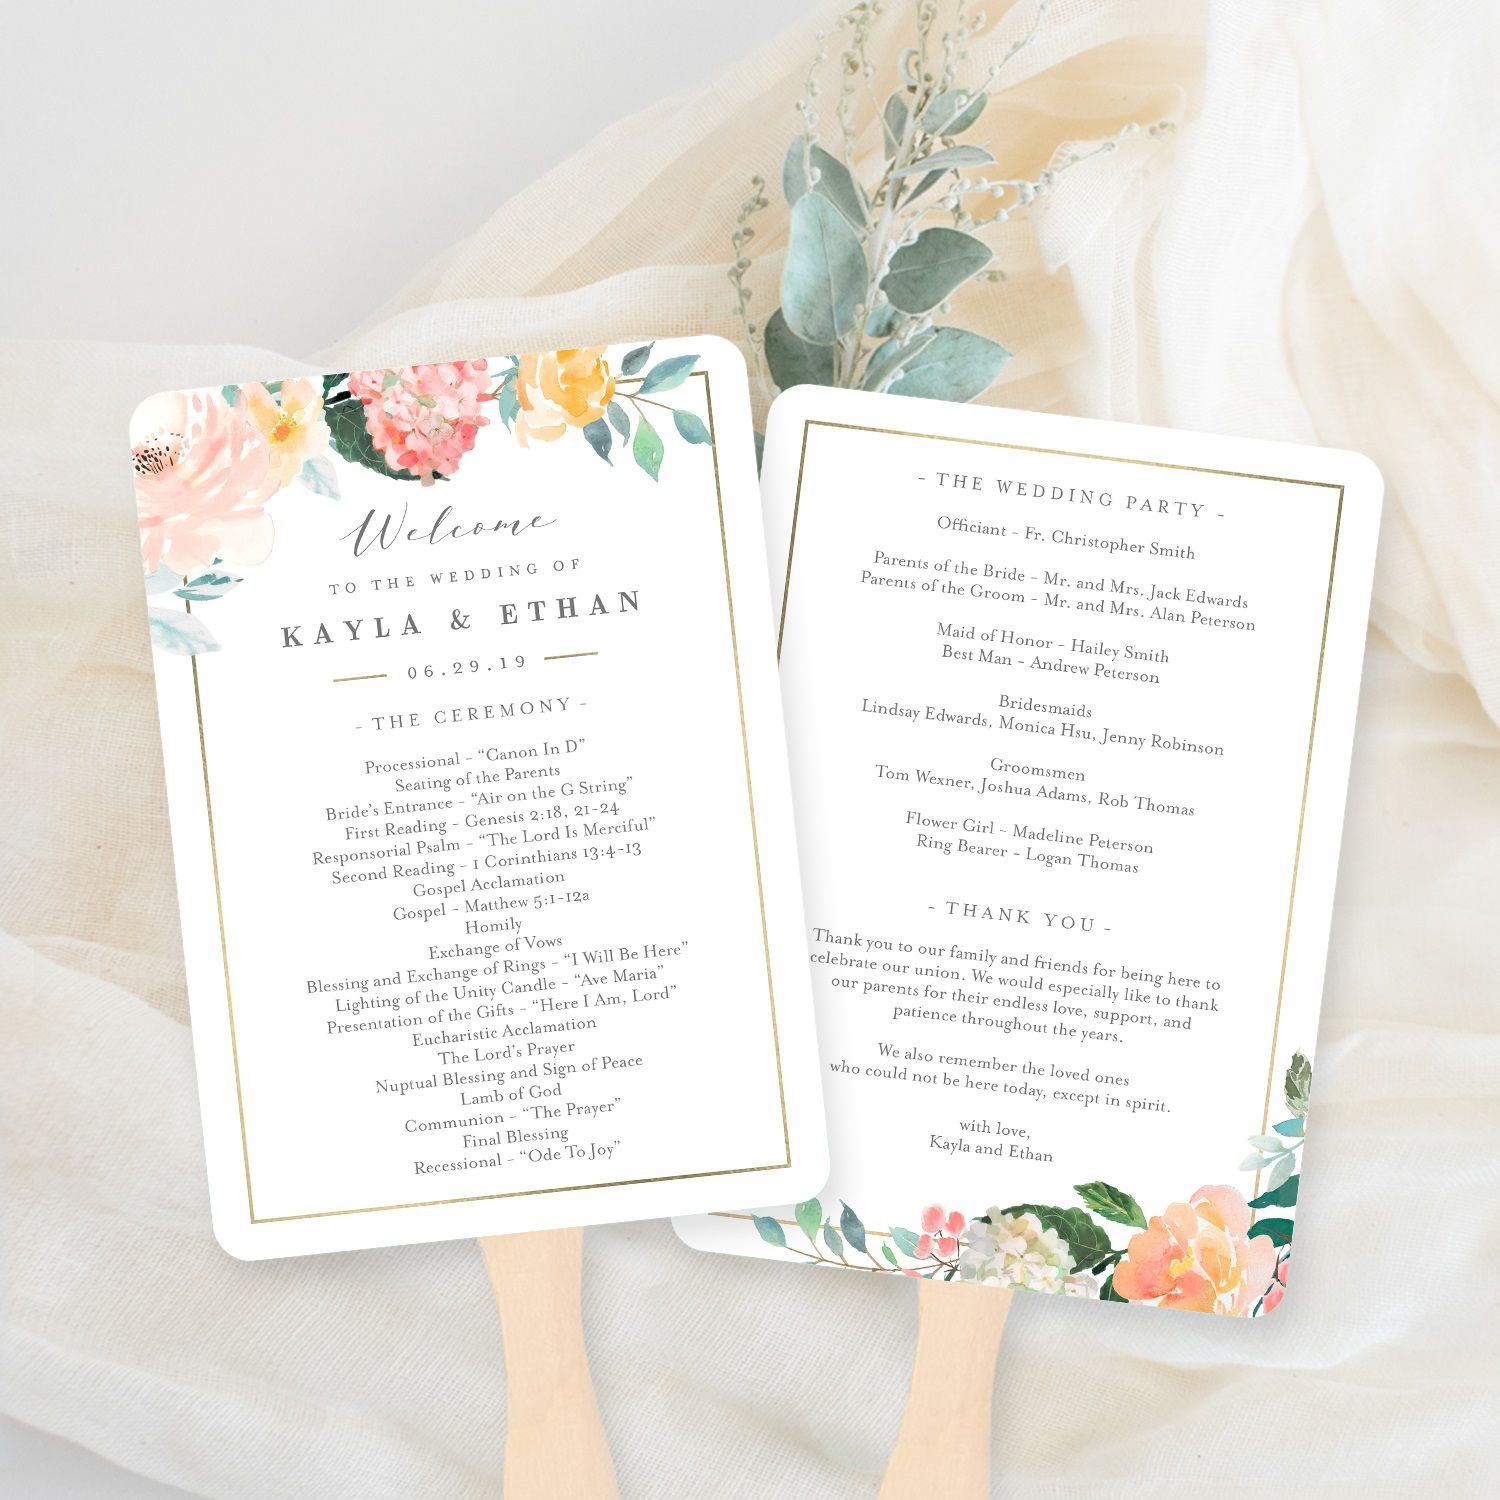 009 Unforgettable Wedding Program Fan Template Inspiration  Free Word Paddle Downloadable That Can Be PrintedFull